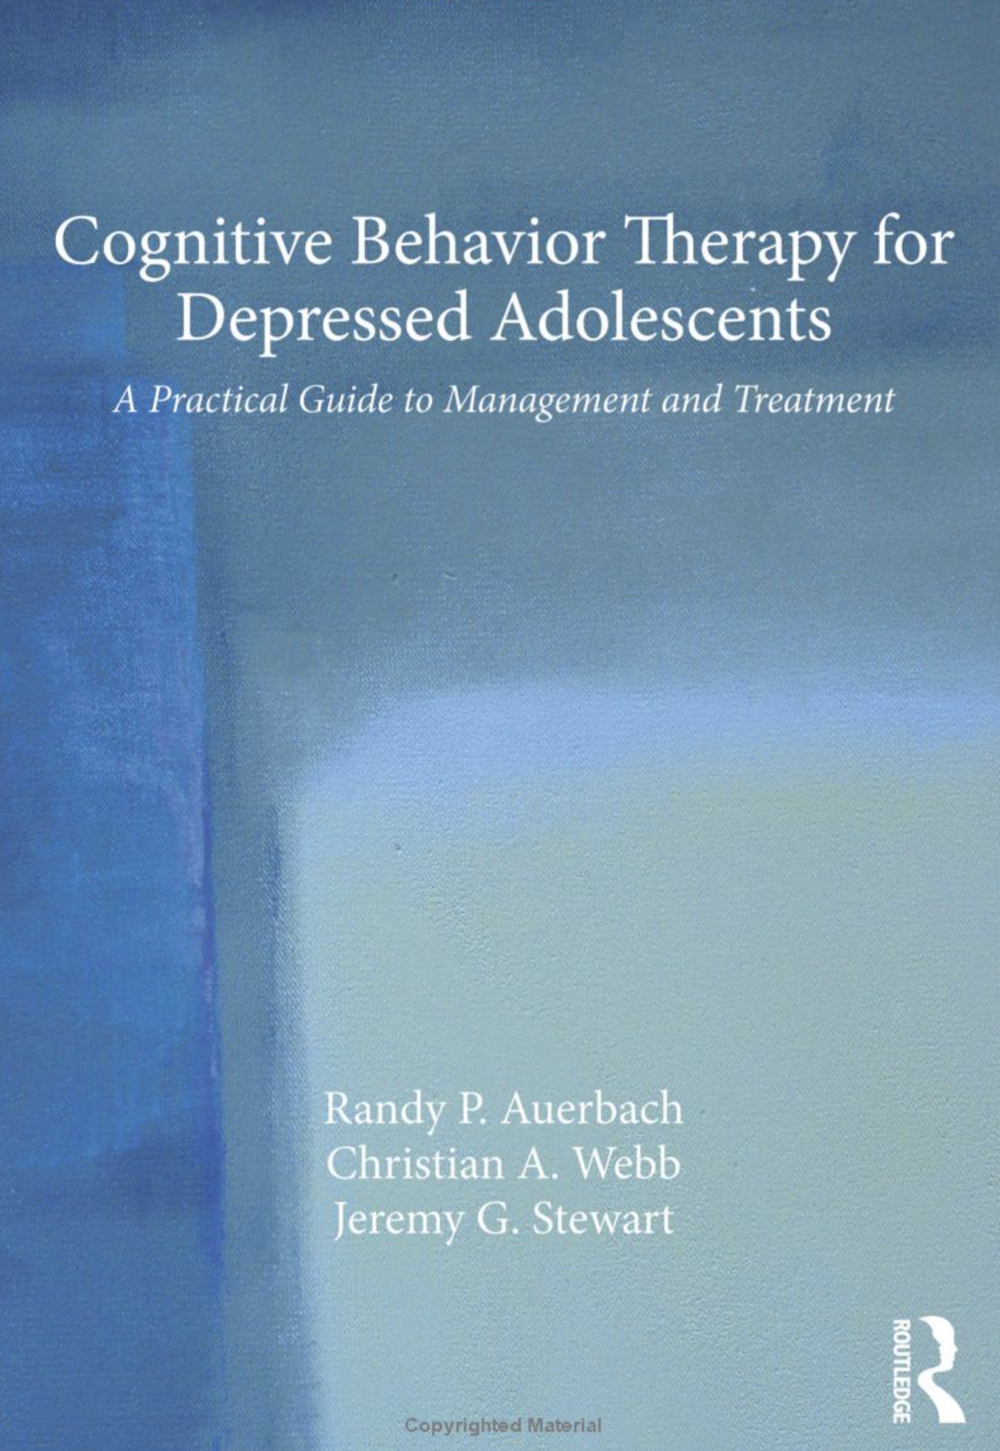 Cognitive Behavioral Therapy (CBT) for Depressed Adolescent Girls - Within a trial of CBT for depressed adolescent girls, we are examining the extent to which teens acquire and utilize different cognitive and behavioral emotion regulation skills. As well, we are examining neural (EEG/ERP) predictors and mechanisms of change in CBT. This work is being conducted in collaboration with Dr. Randy Auerbach at Columbia University.